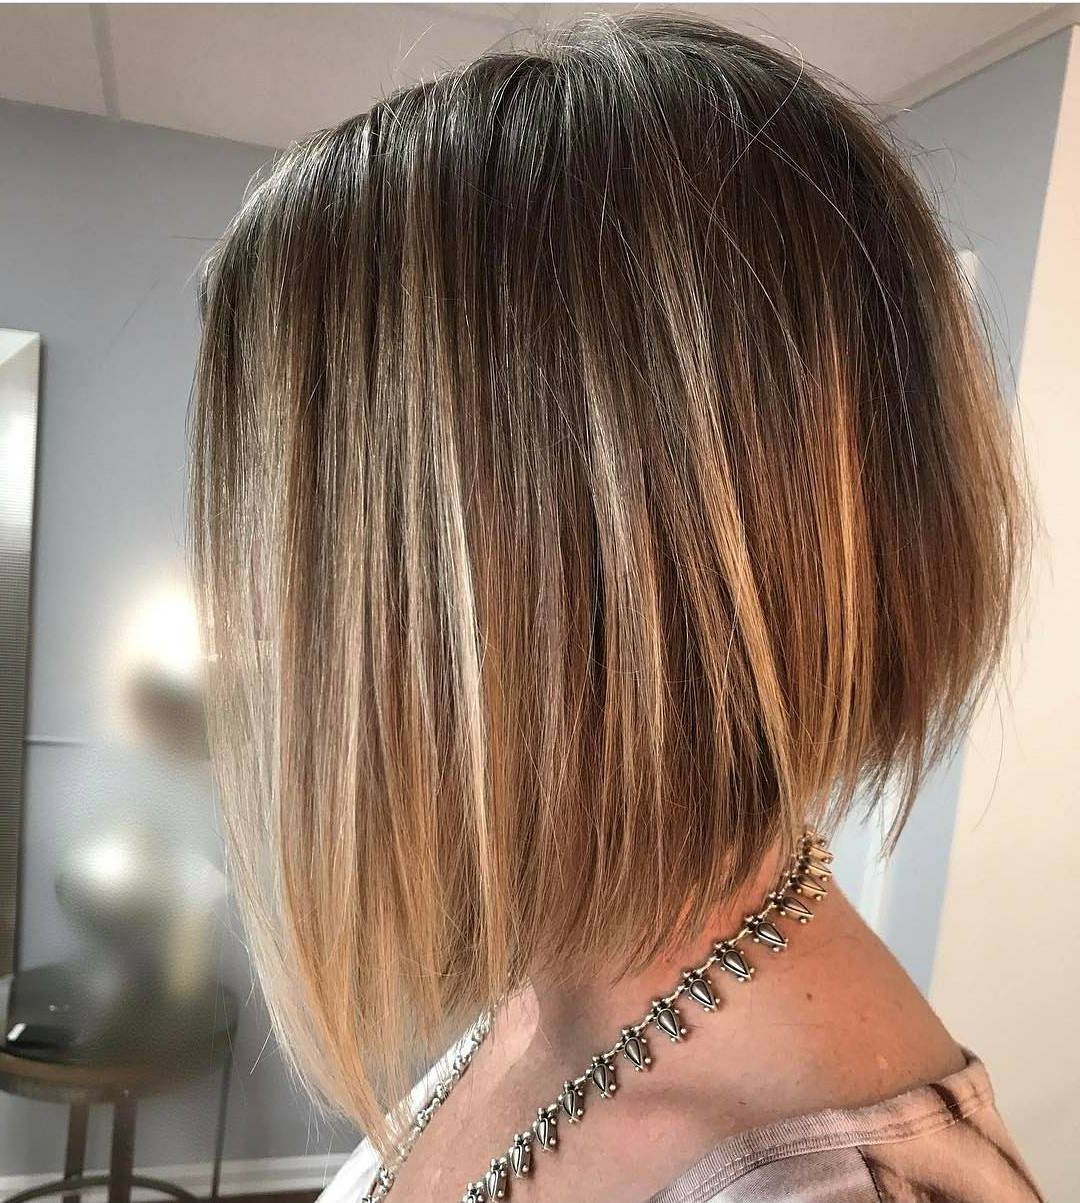 10 Flattering Short Straight Hairstyles 2019 For Stacked Blonde Balayage Pixie Hairstyles For Brunettes (View 3 of 20)